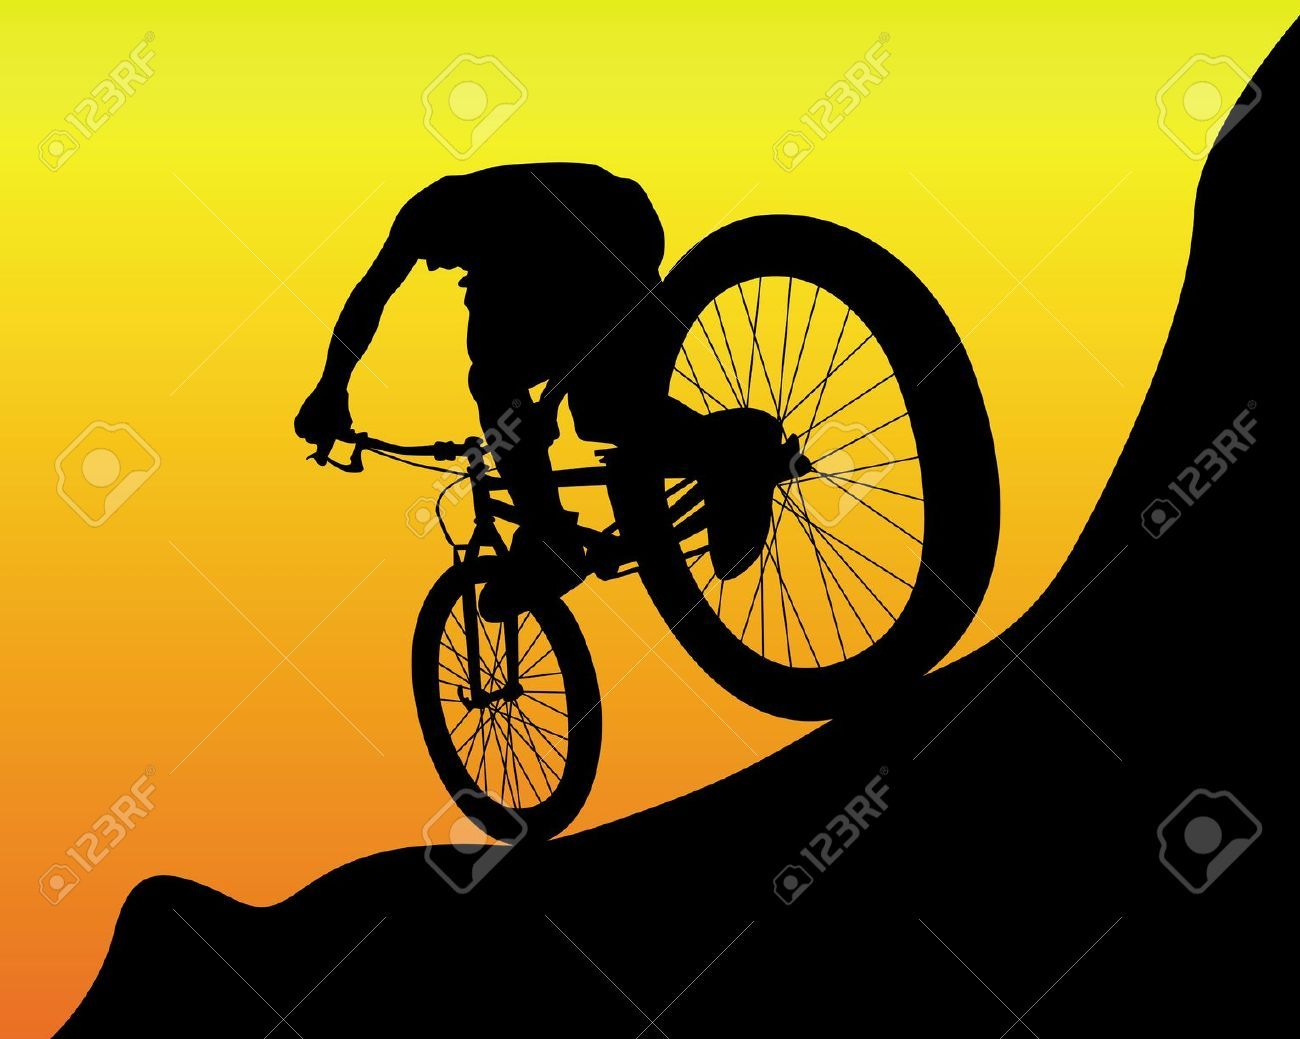 Black silhouette of a mountain biker on an orange background | gifts ...